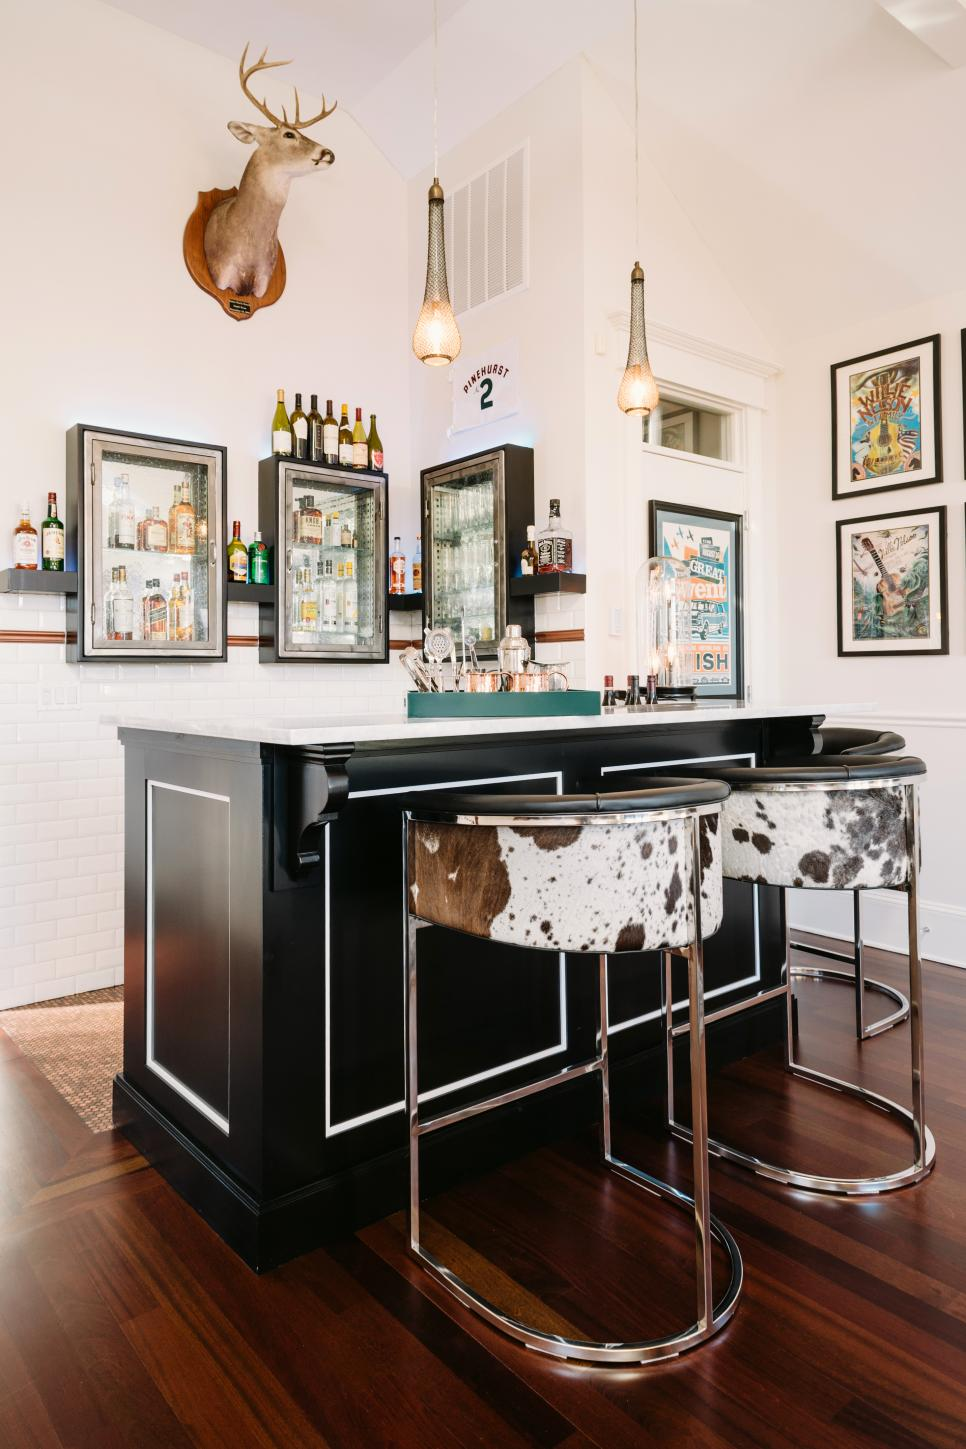 Vintage Medicine Cabinets With Glass Panes House The Goods Behind Bar Mounted Deer Head Lends A Rustic Wild West Feel To Inspired